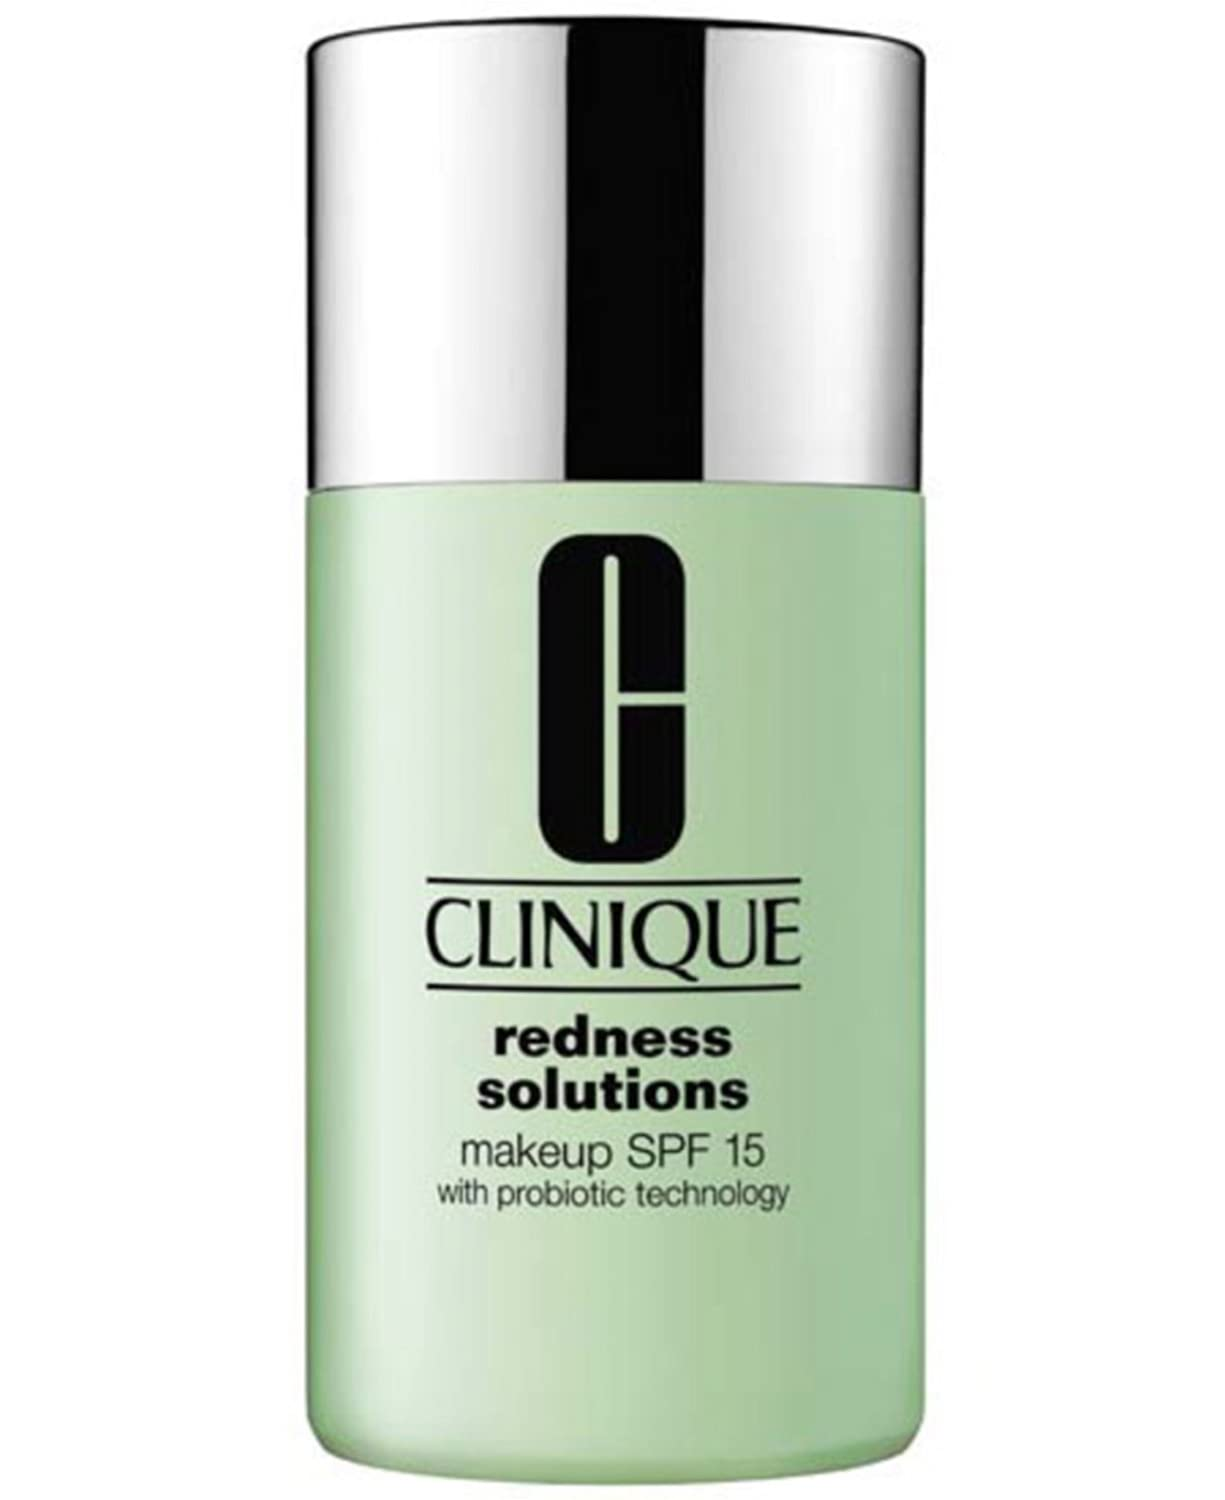 Clinique Redness Solutions Makeup Foundation SPF 15 with Probiotic Technology, 05 Calming Honey (MF)